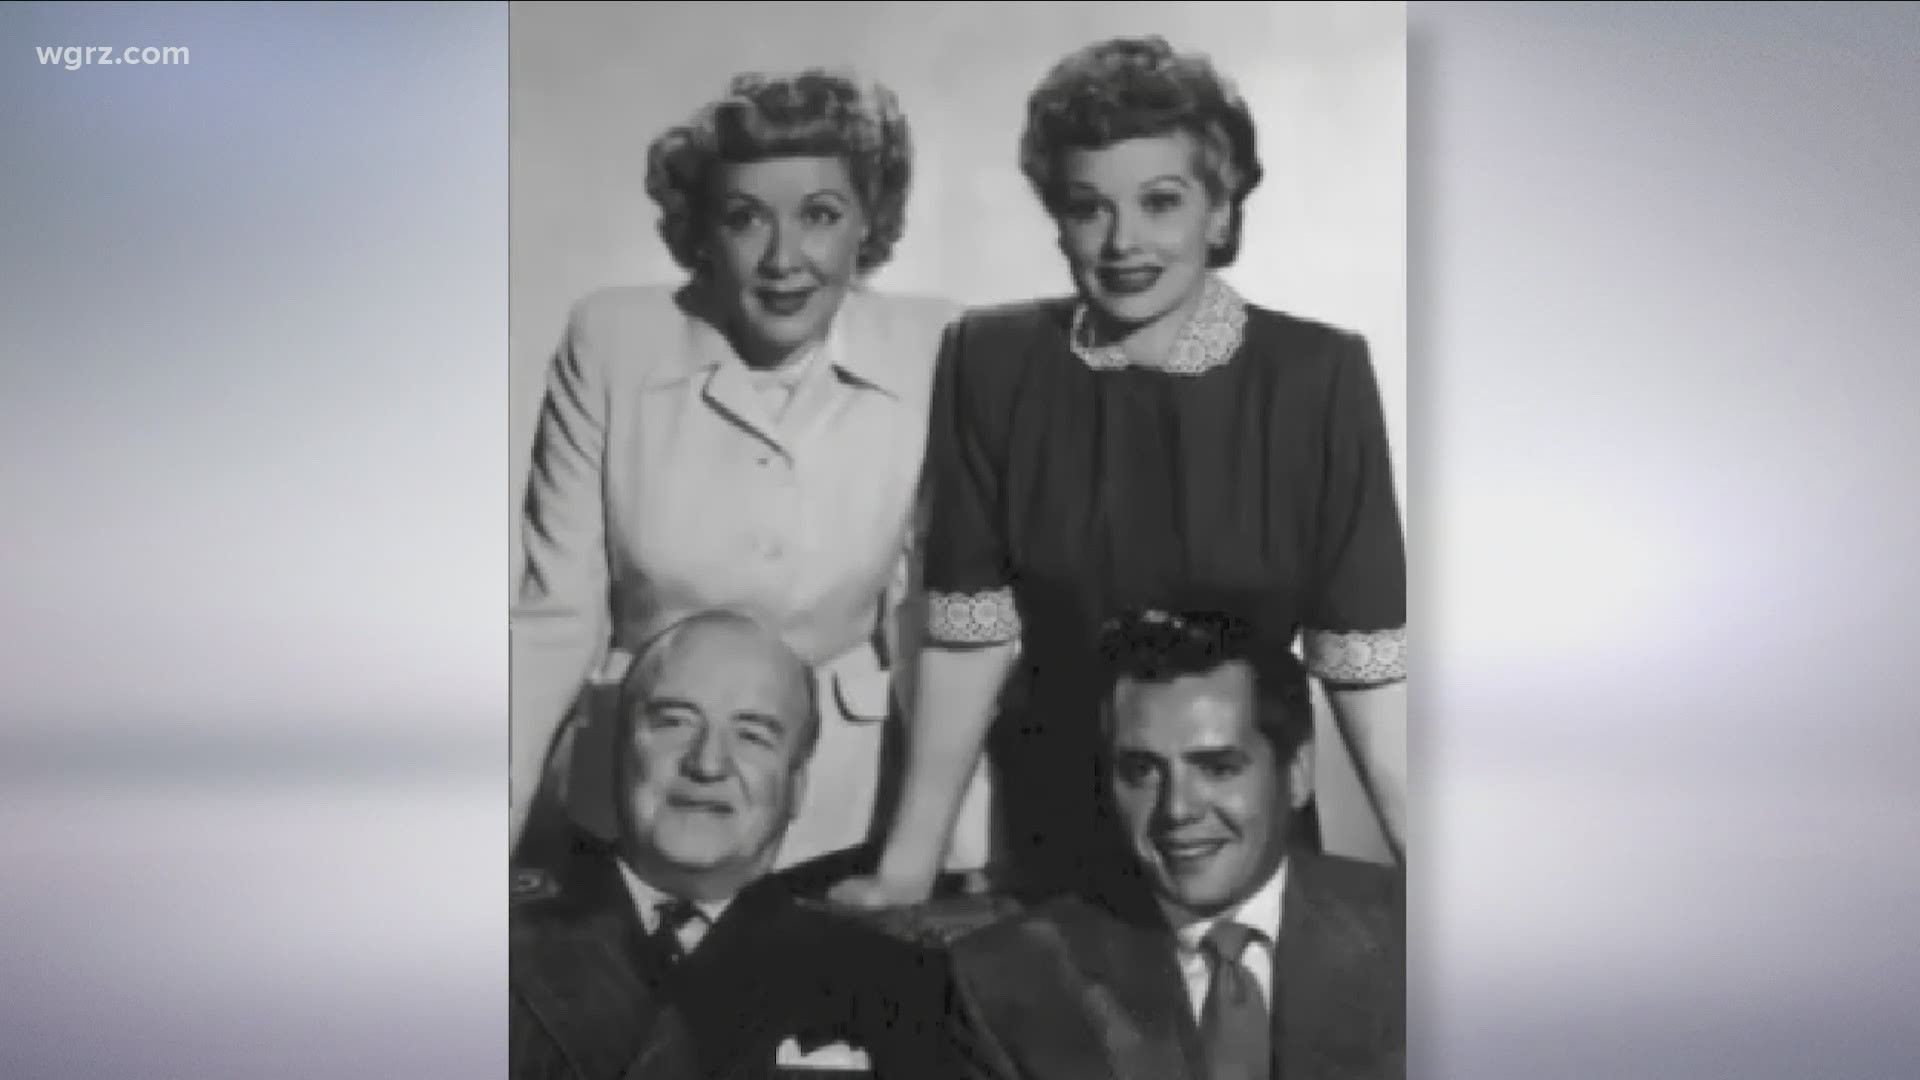 I love lucy download full episodes online